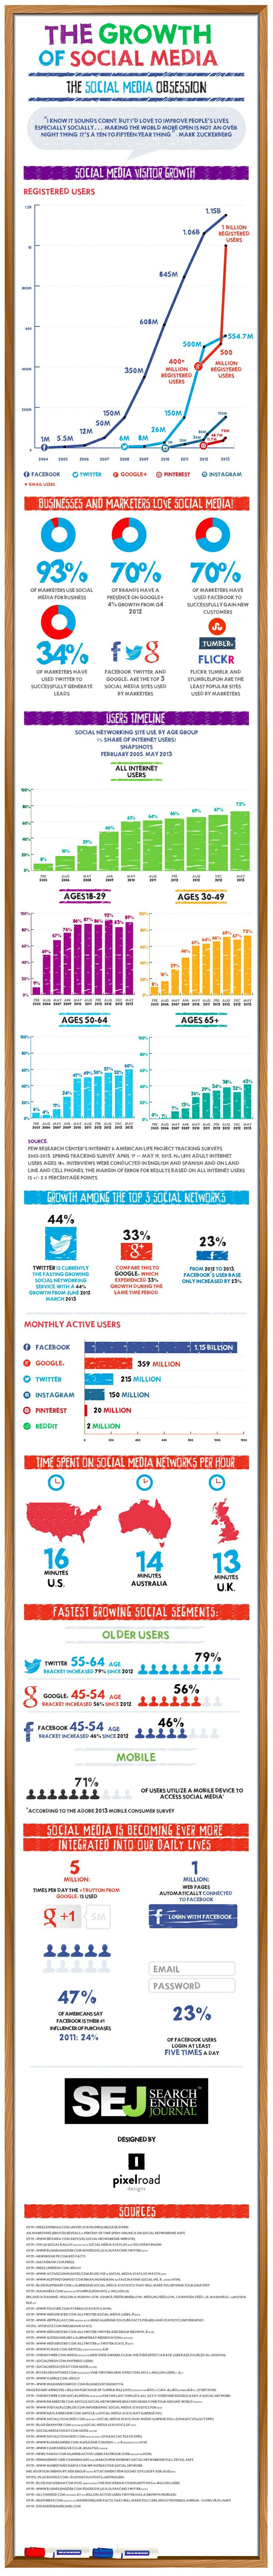 Growth of social media